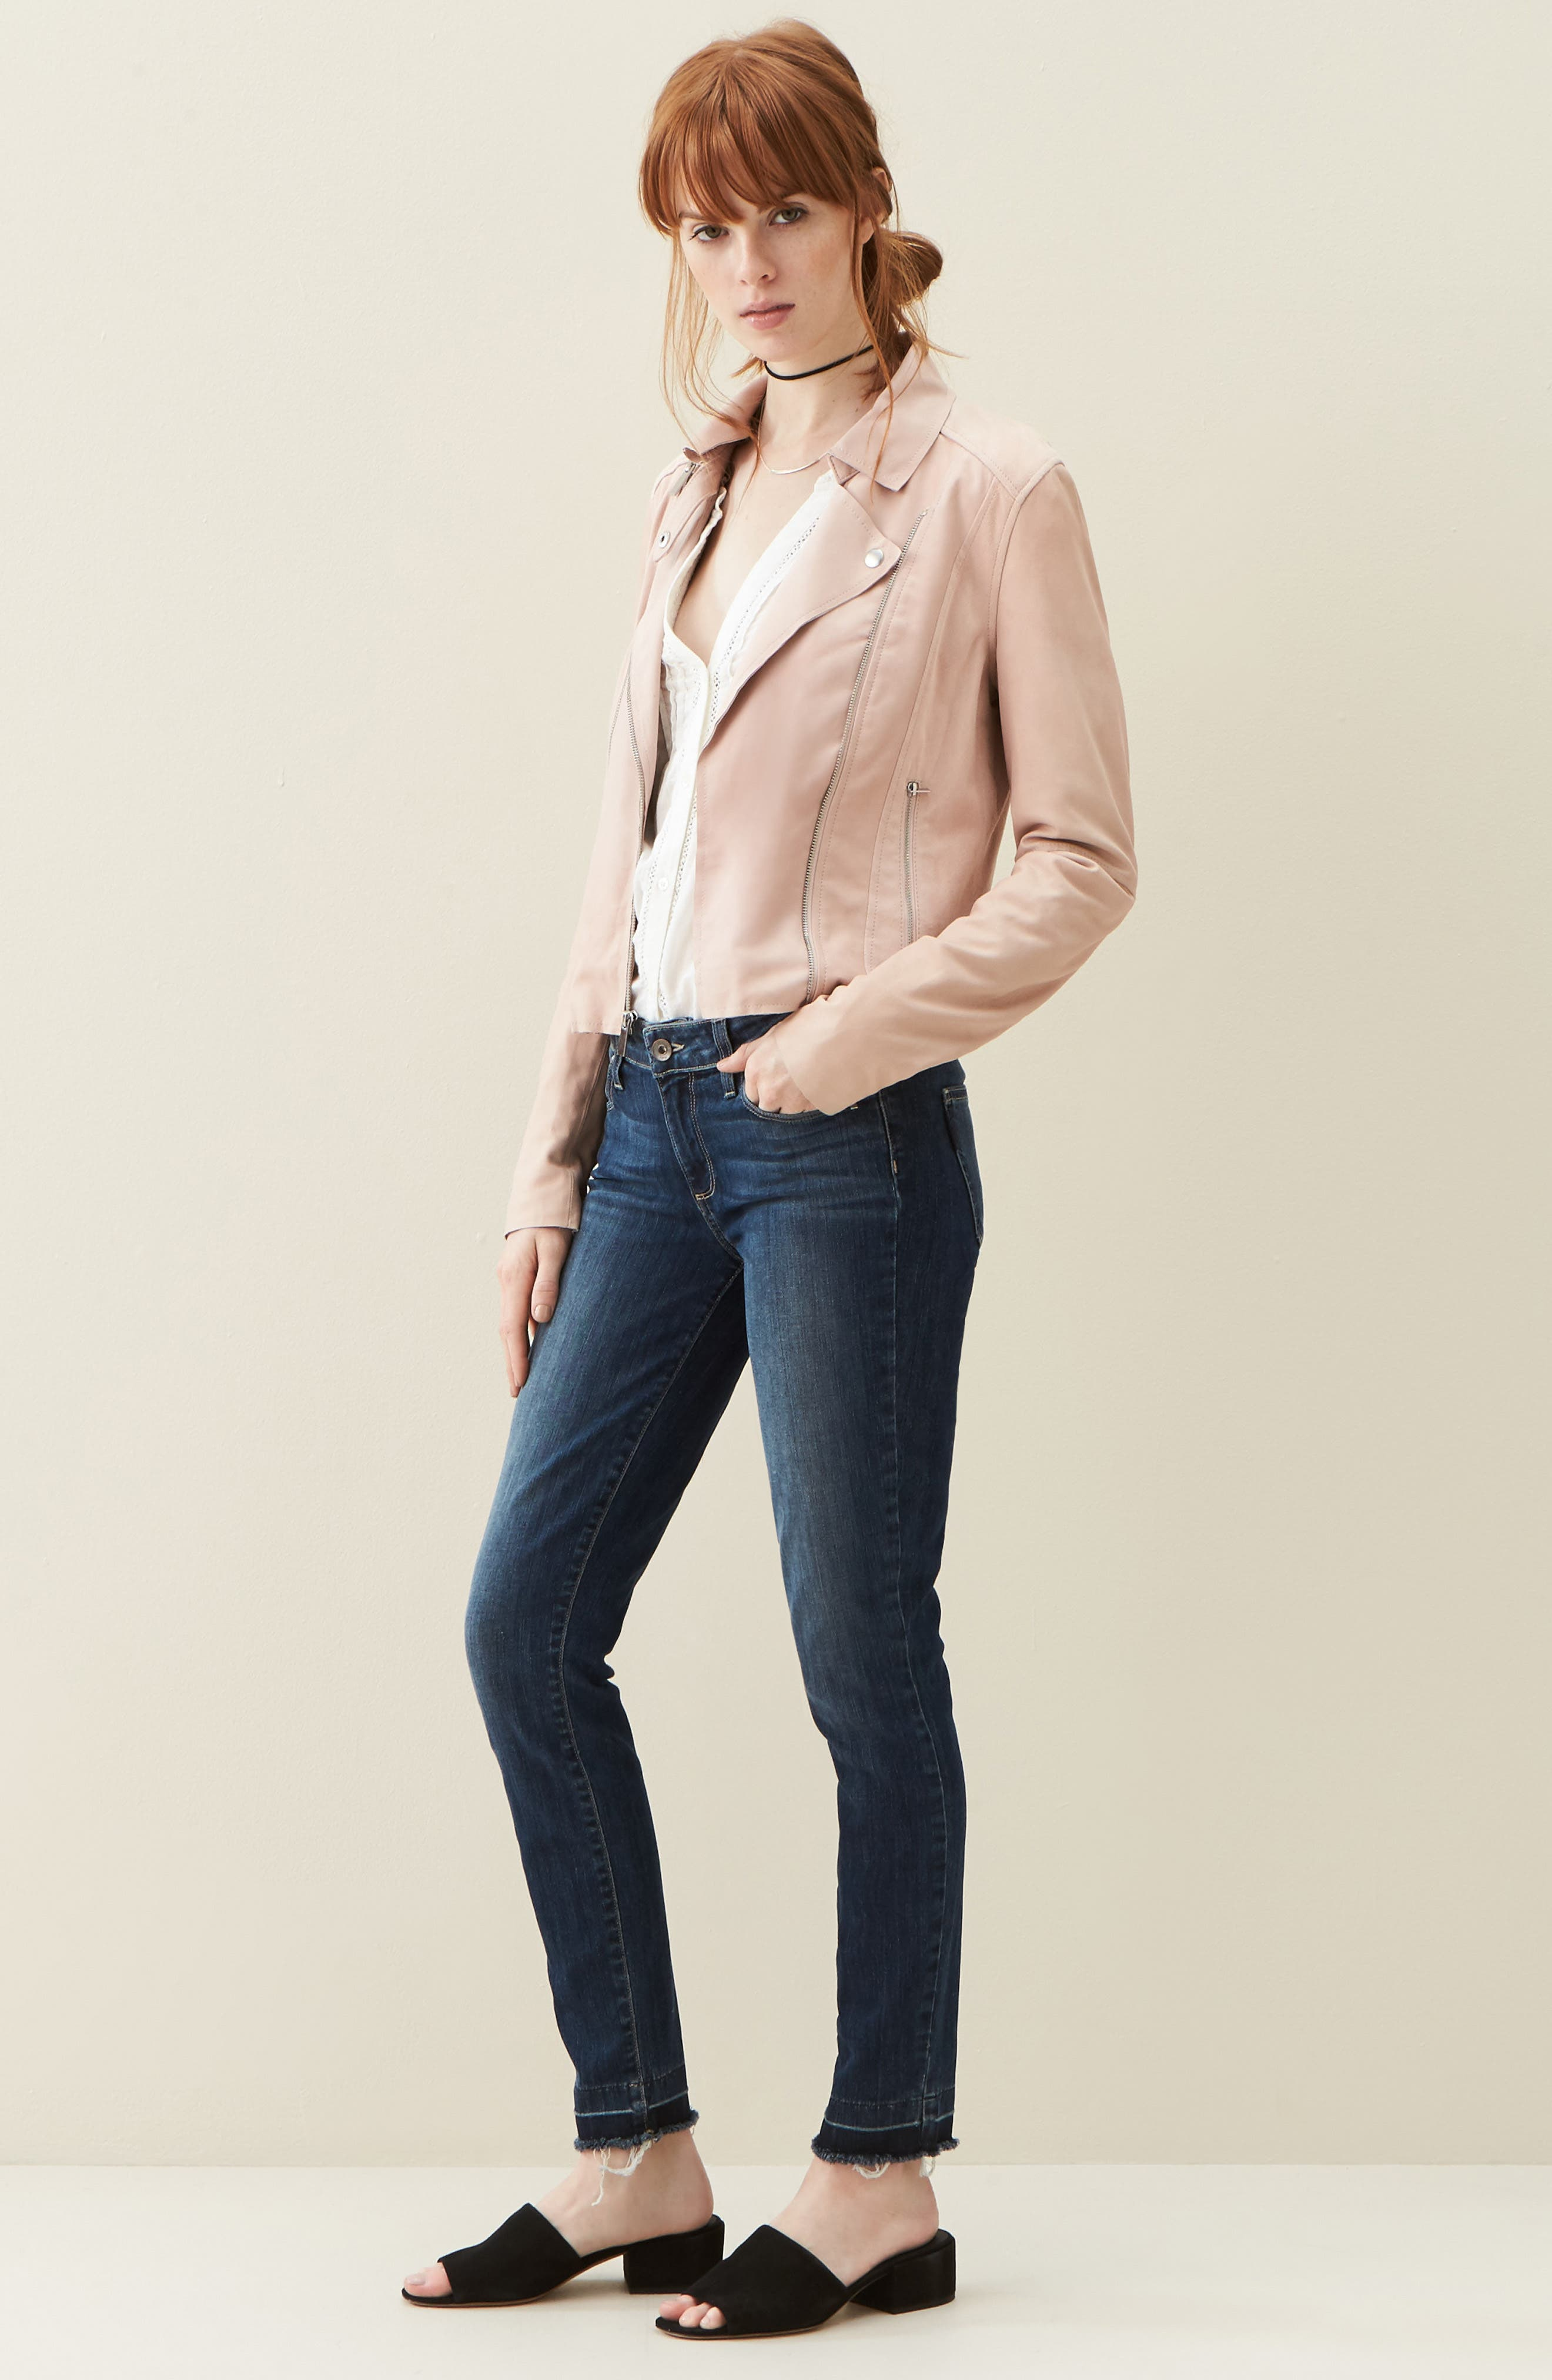 PAIGE Jacket, Blouse & Jeans Outfit with Accessories